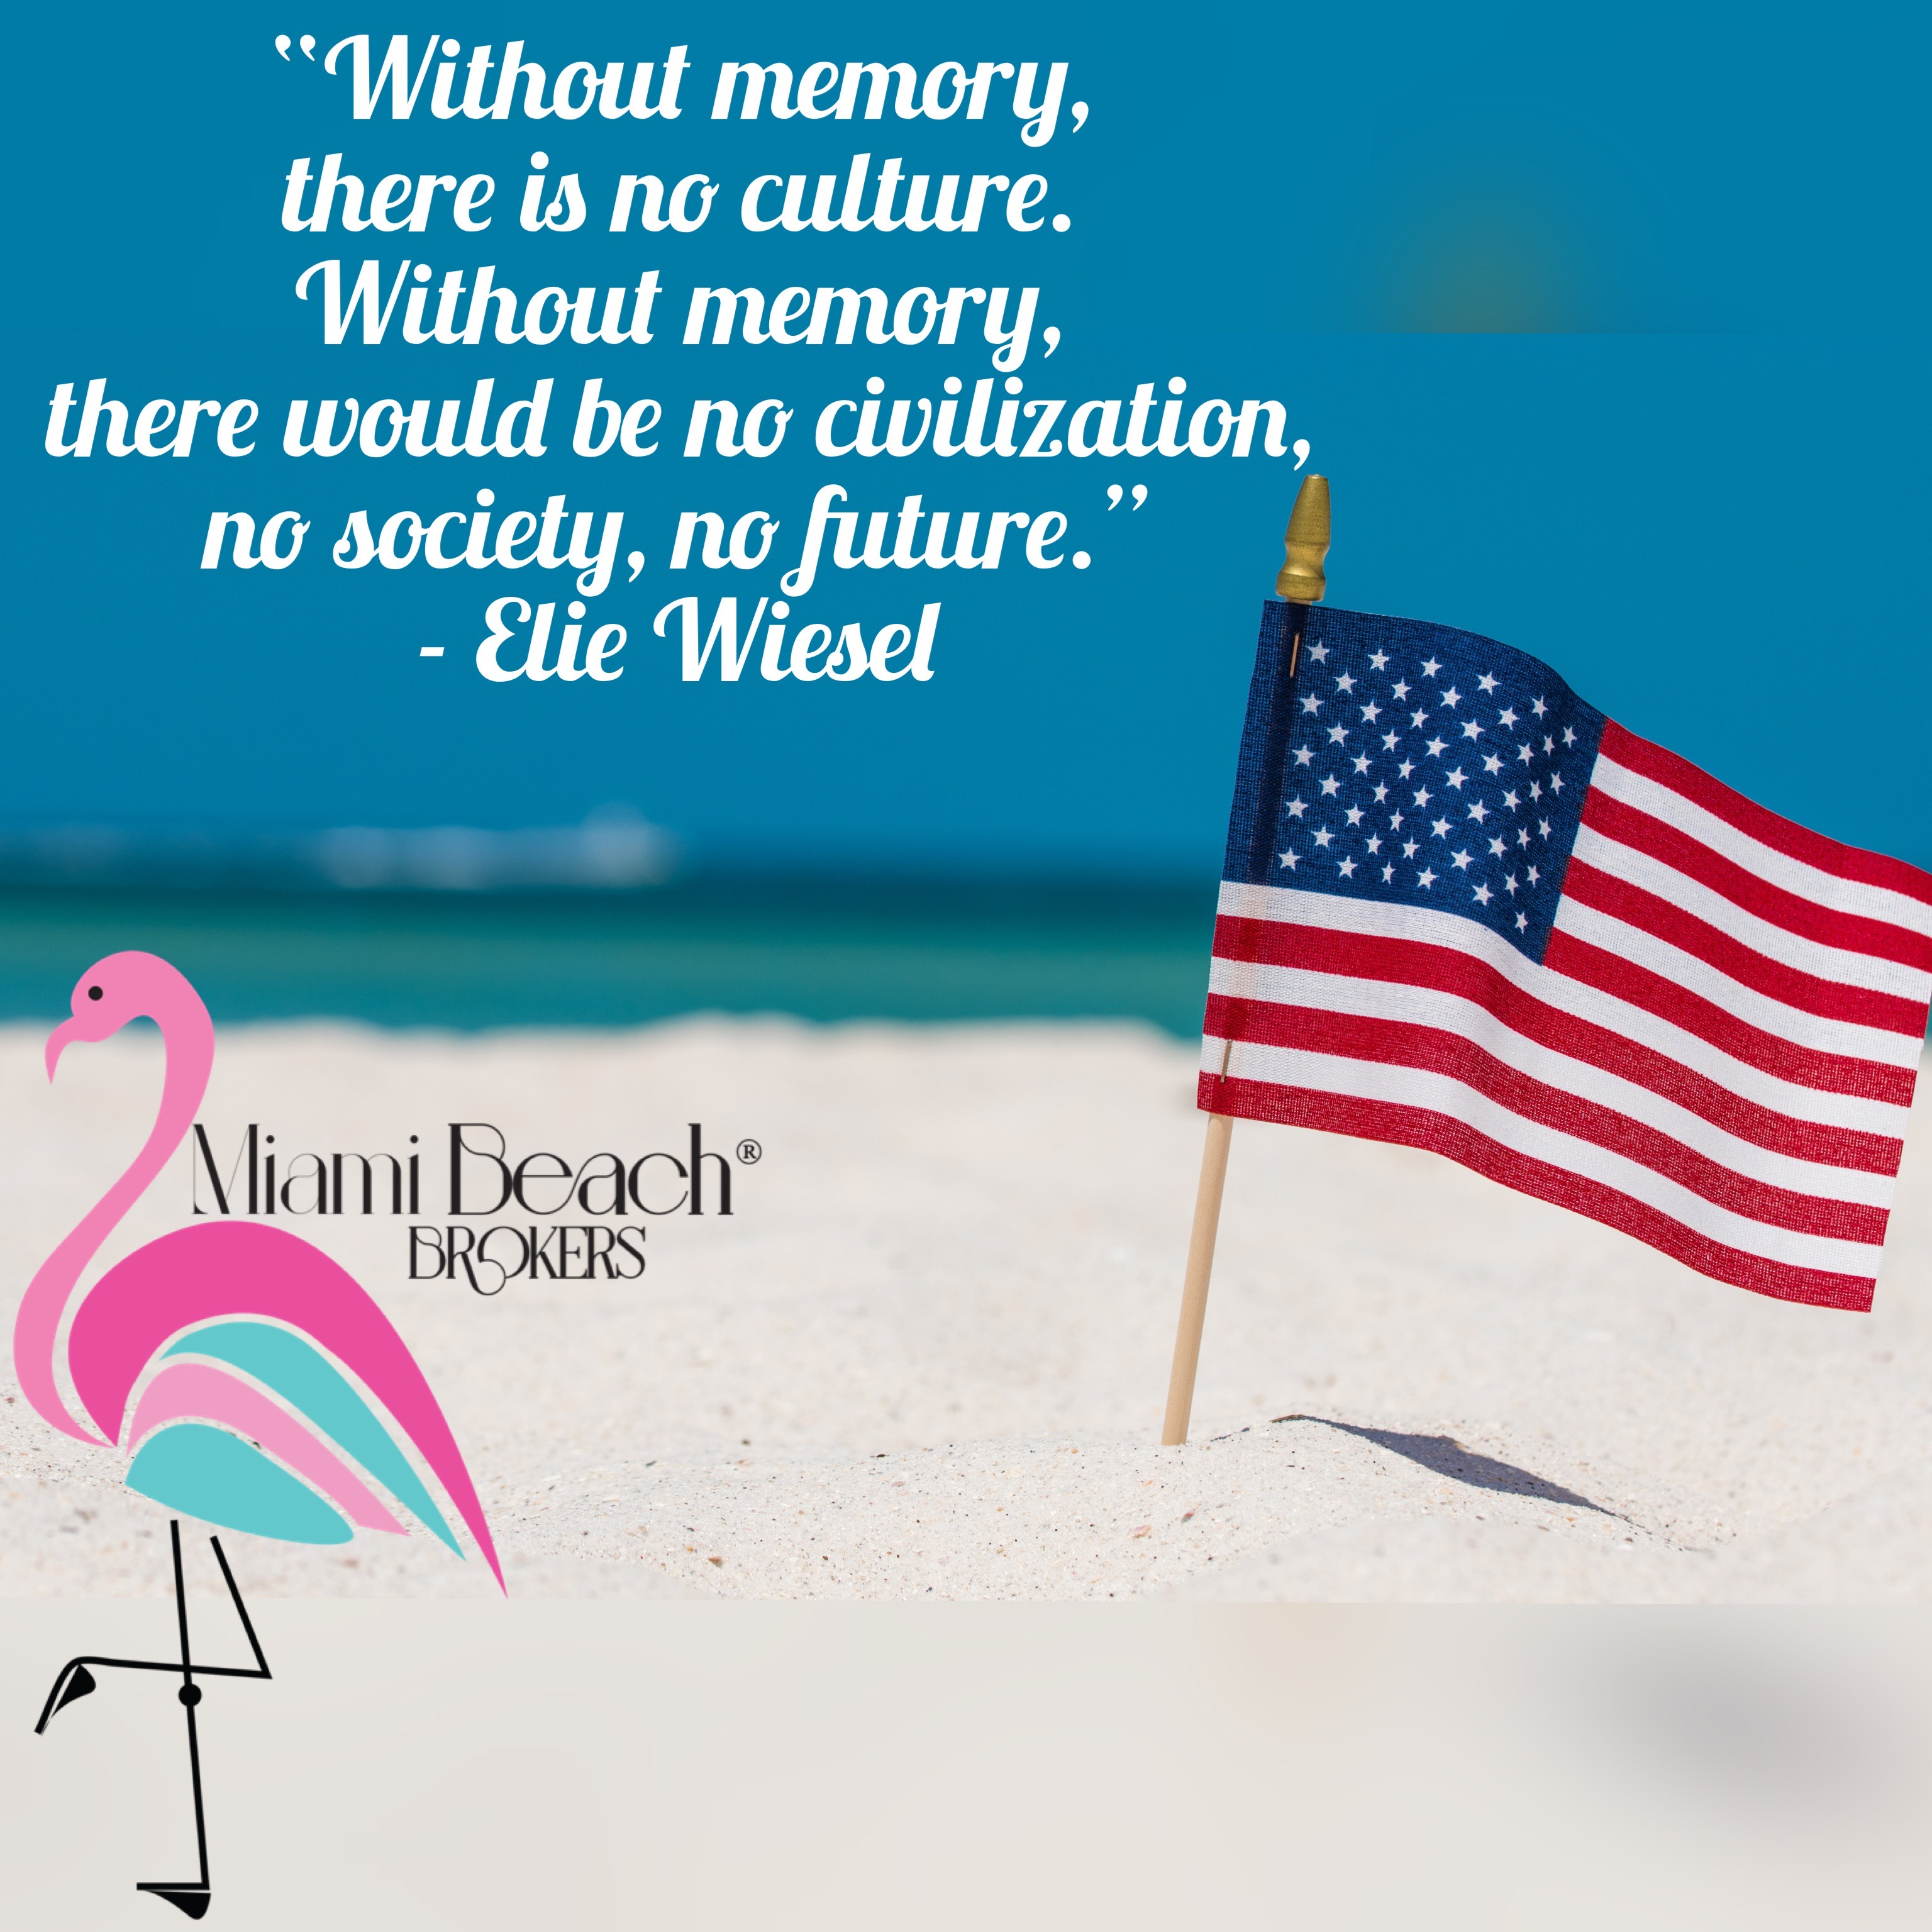 Memorial Day 2021 - A Miami Beach Brokers® branded post